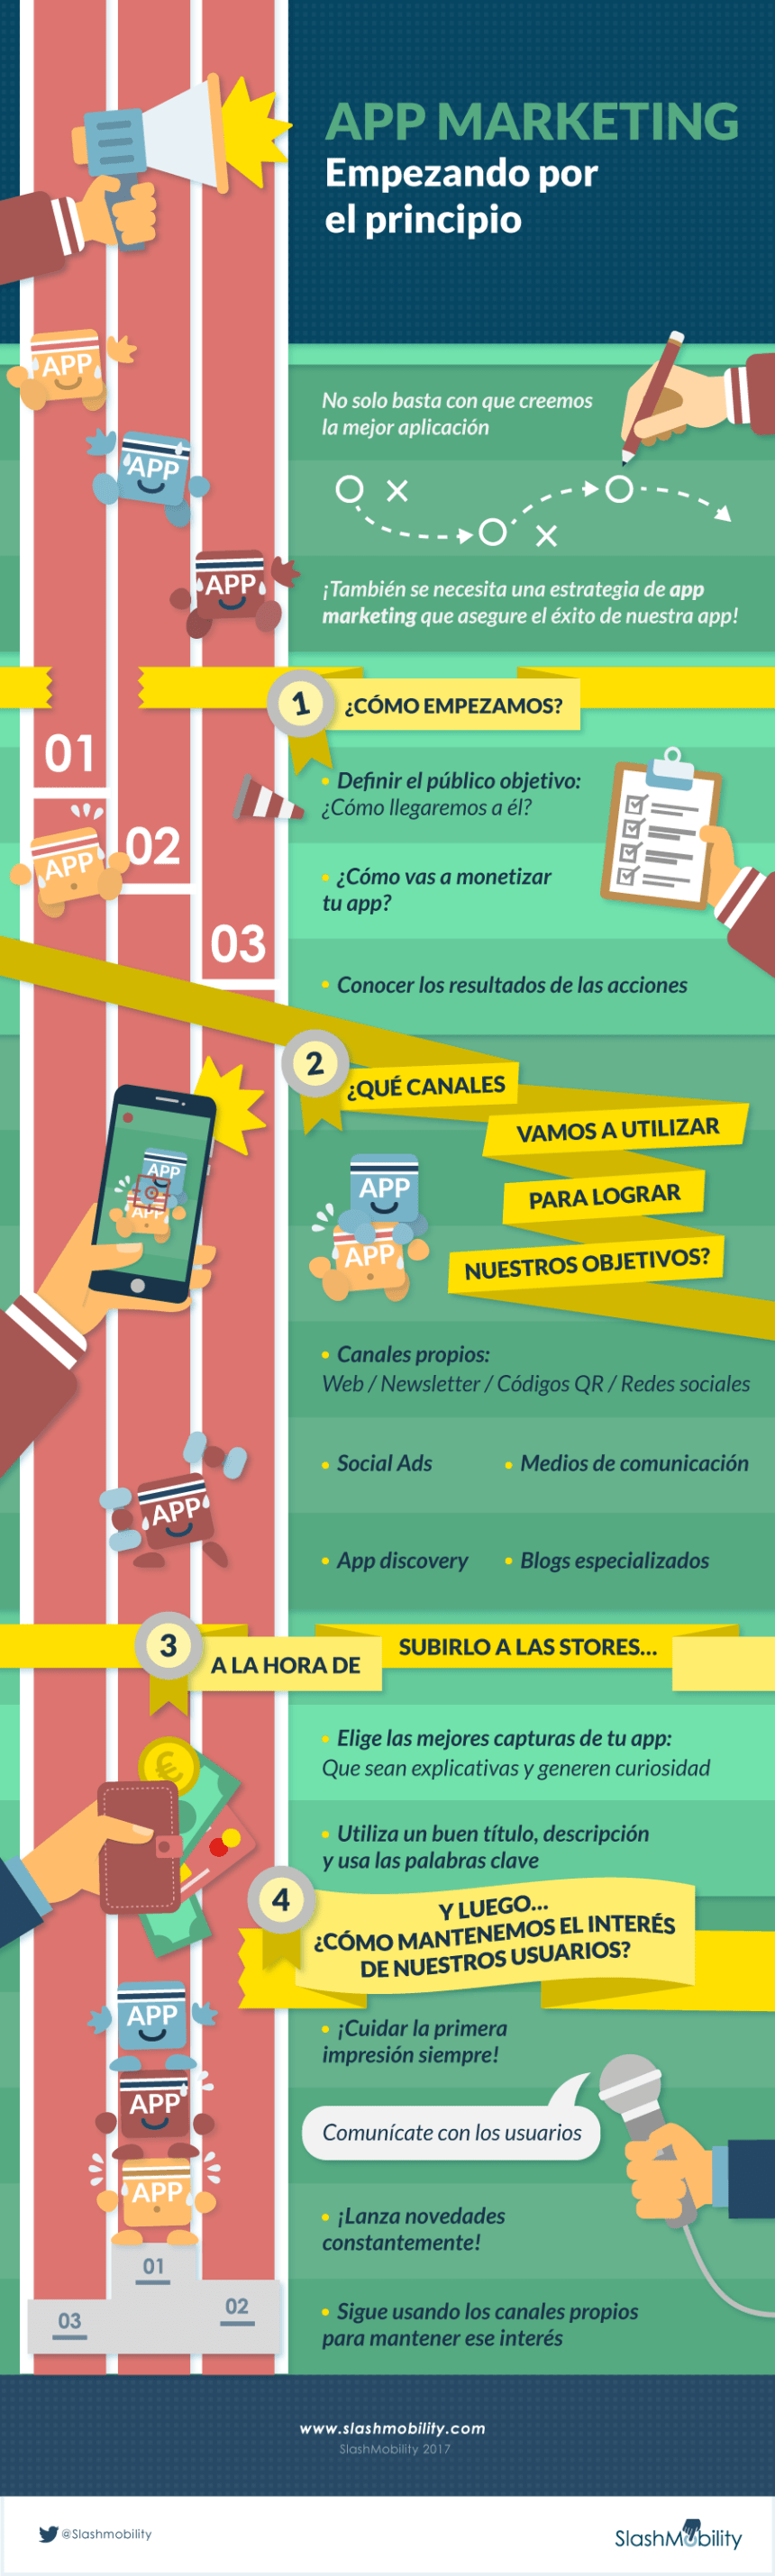 APP Marketing: Empezando por el principio